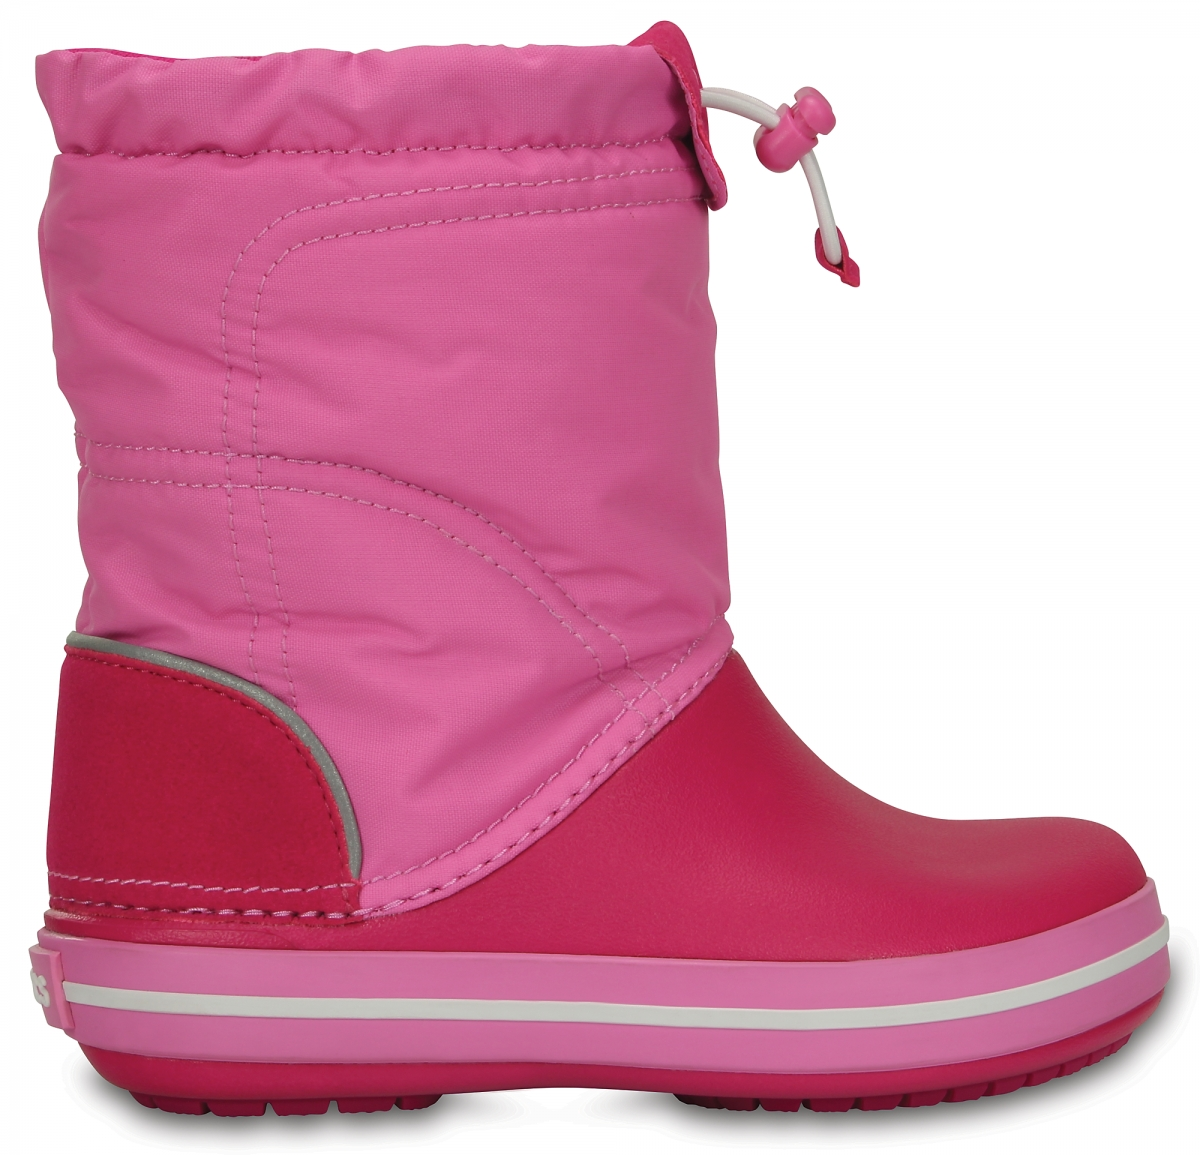 Crocs Crocband LodgePoint Boot Kids - Candy Pink/Party Pink, C13 (30-31)